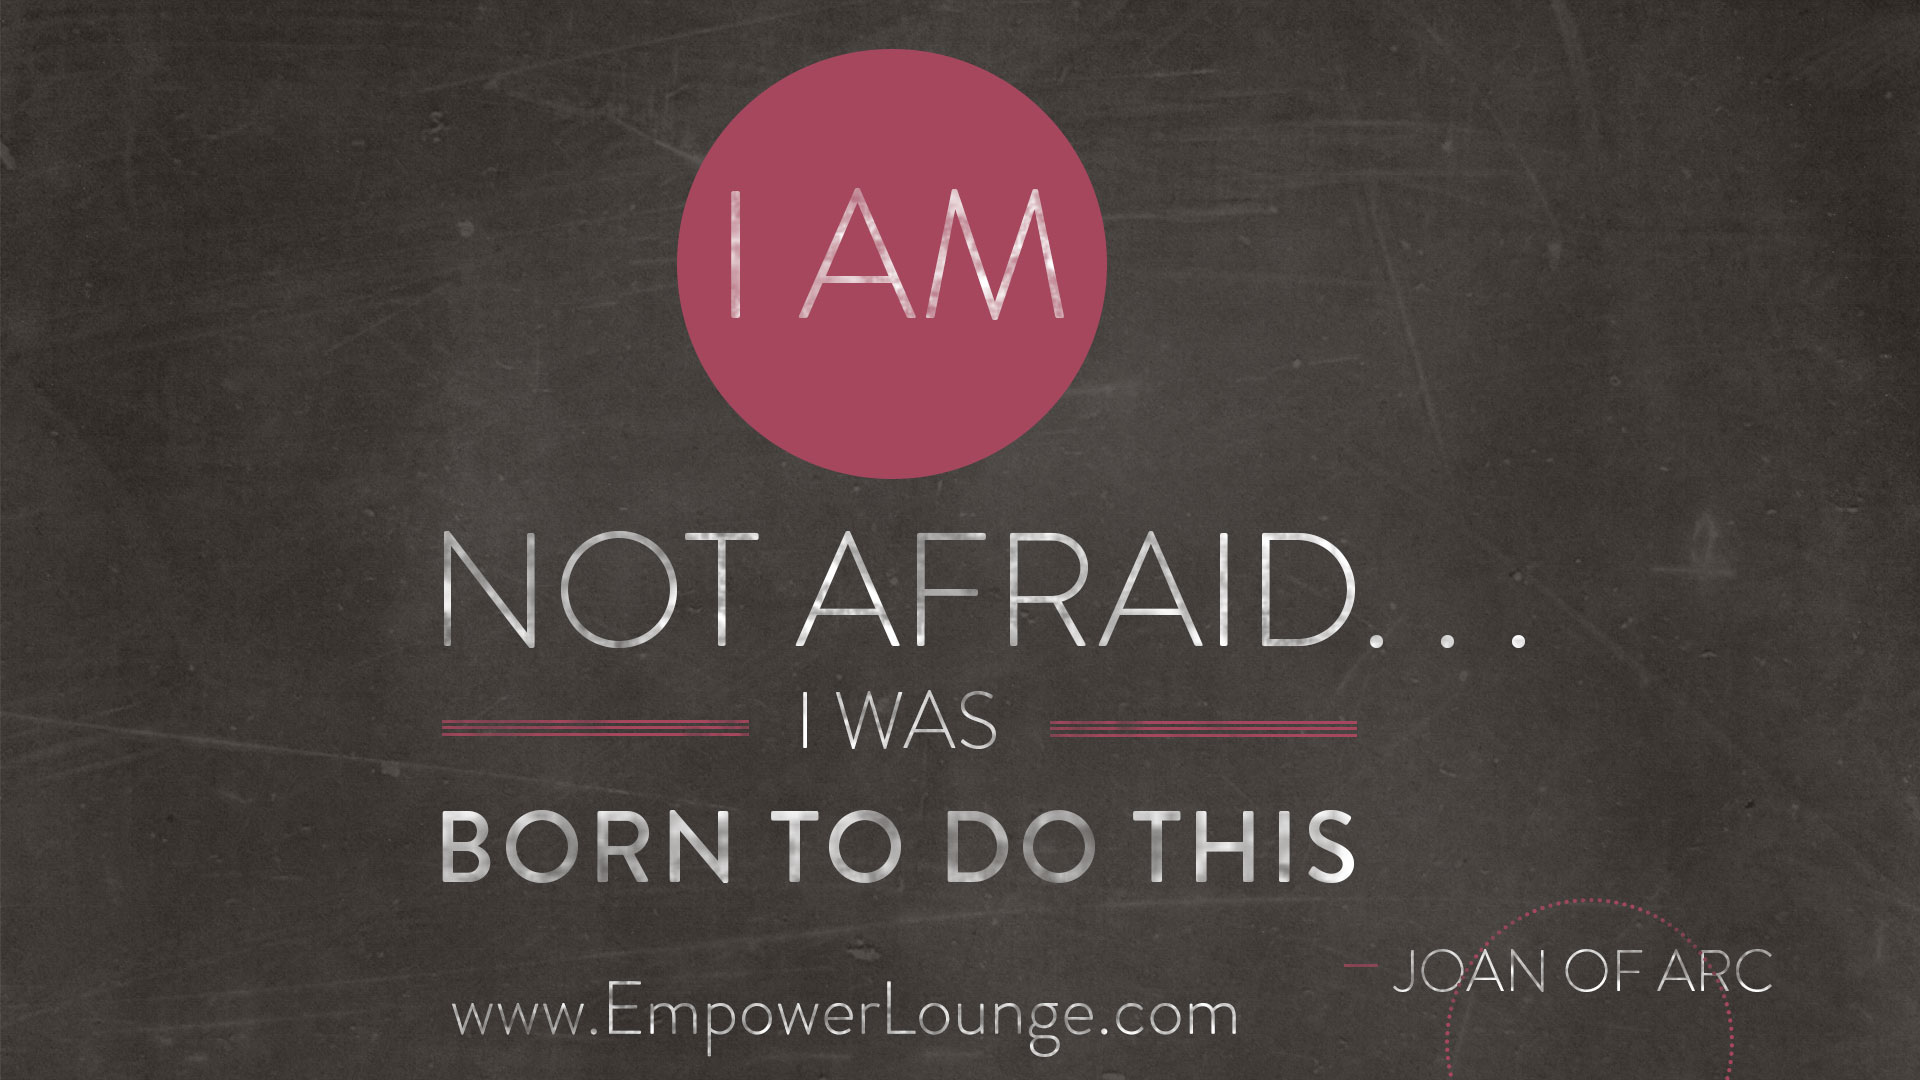 Quotes On Women Inspiring Quoteswomen Trailblazers  Empower Lounge